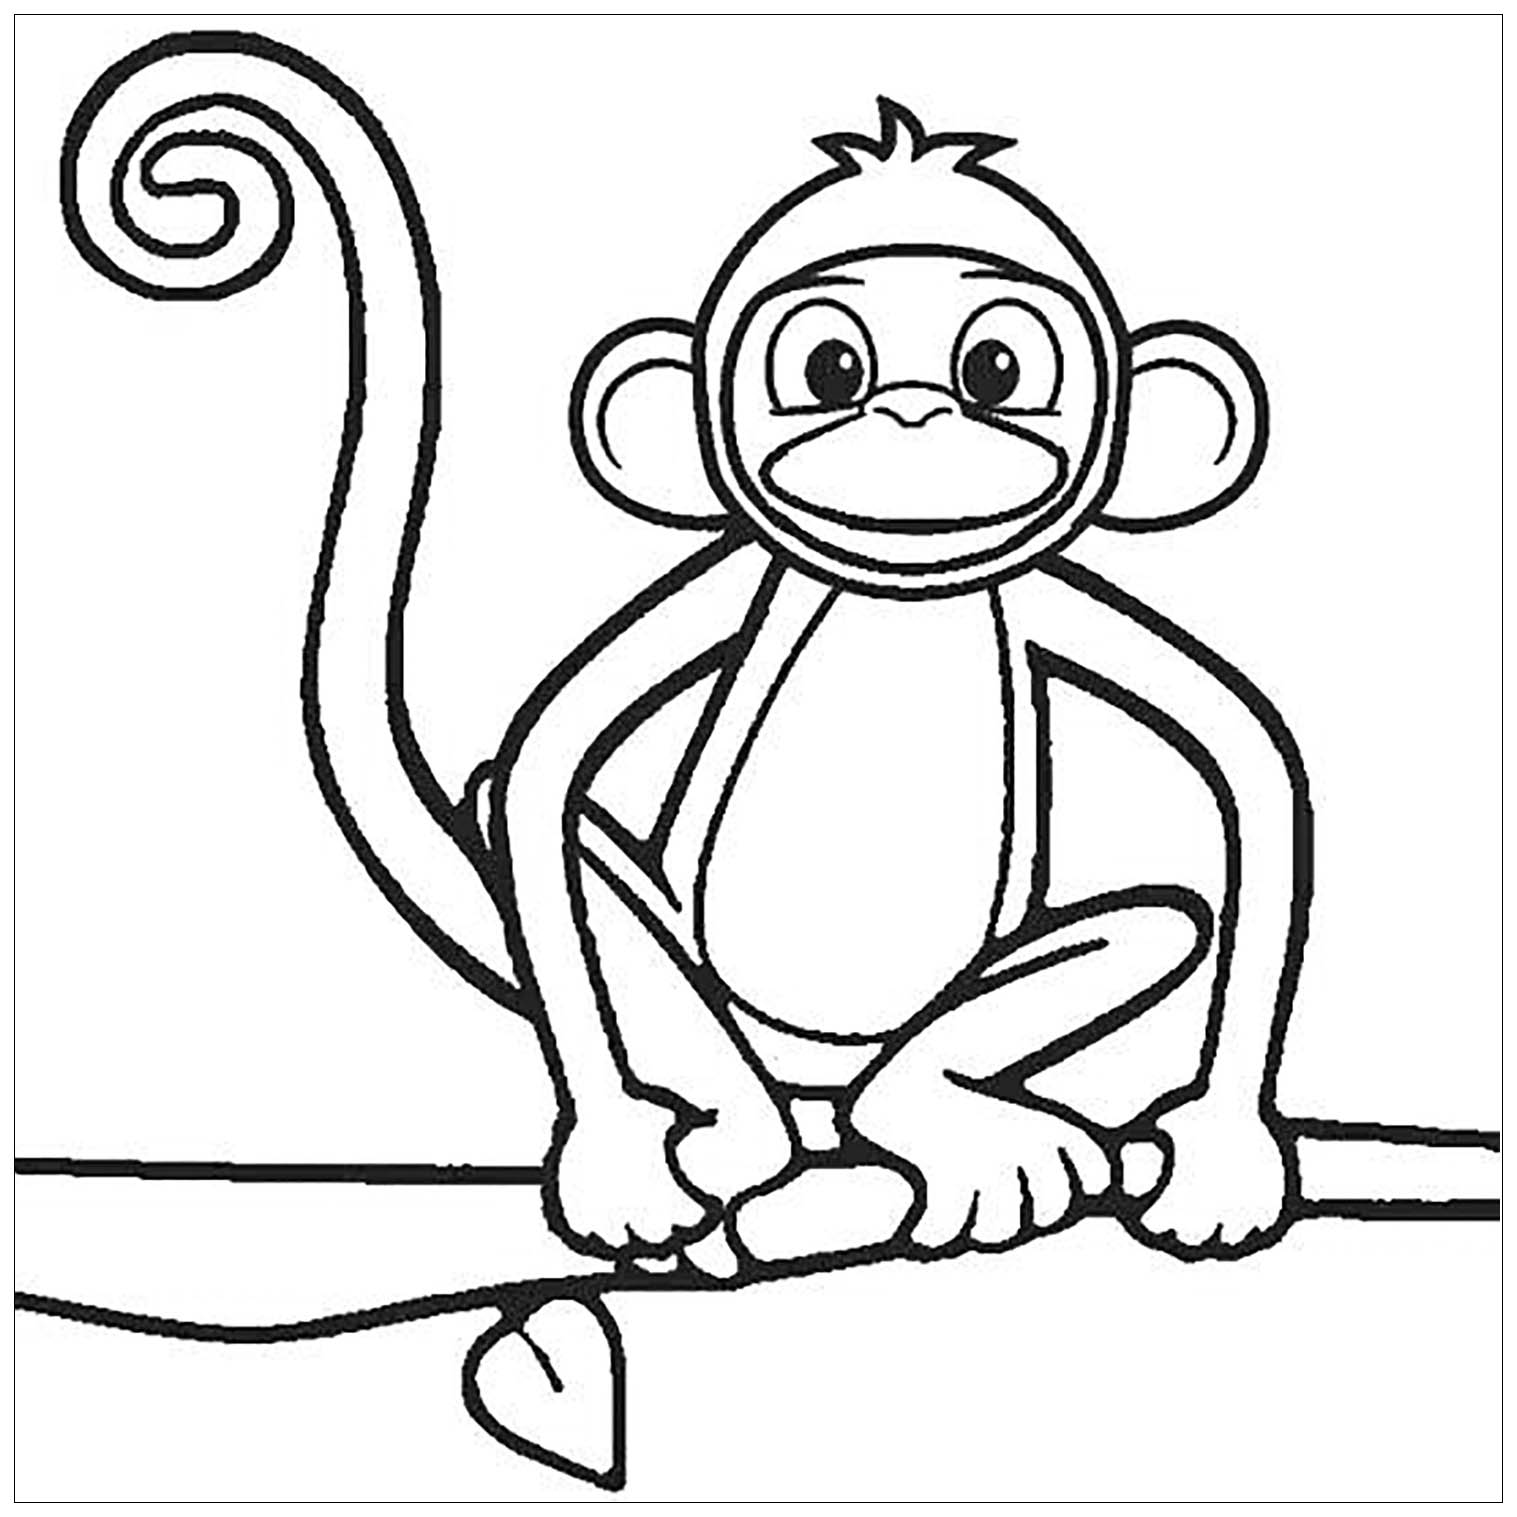 monkey pictures for coloring monkeys to color for kids monkeys kids coloring pages coloring for pictures monkey